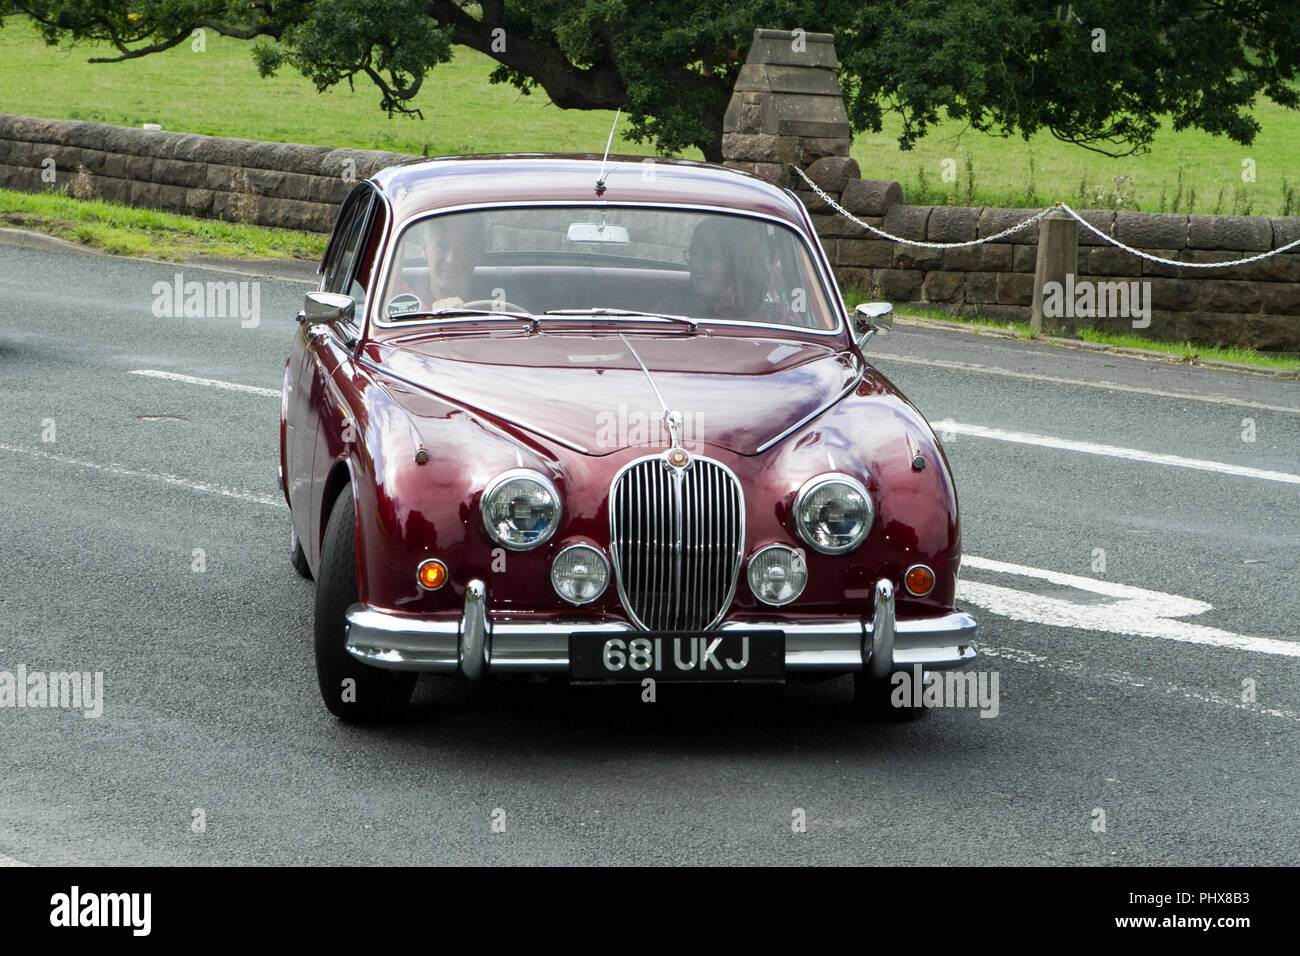 Maroon Jaguar Classic Cars Veteran Restored Car Classic Vehicle